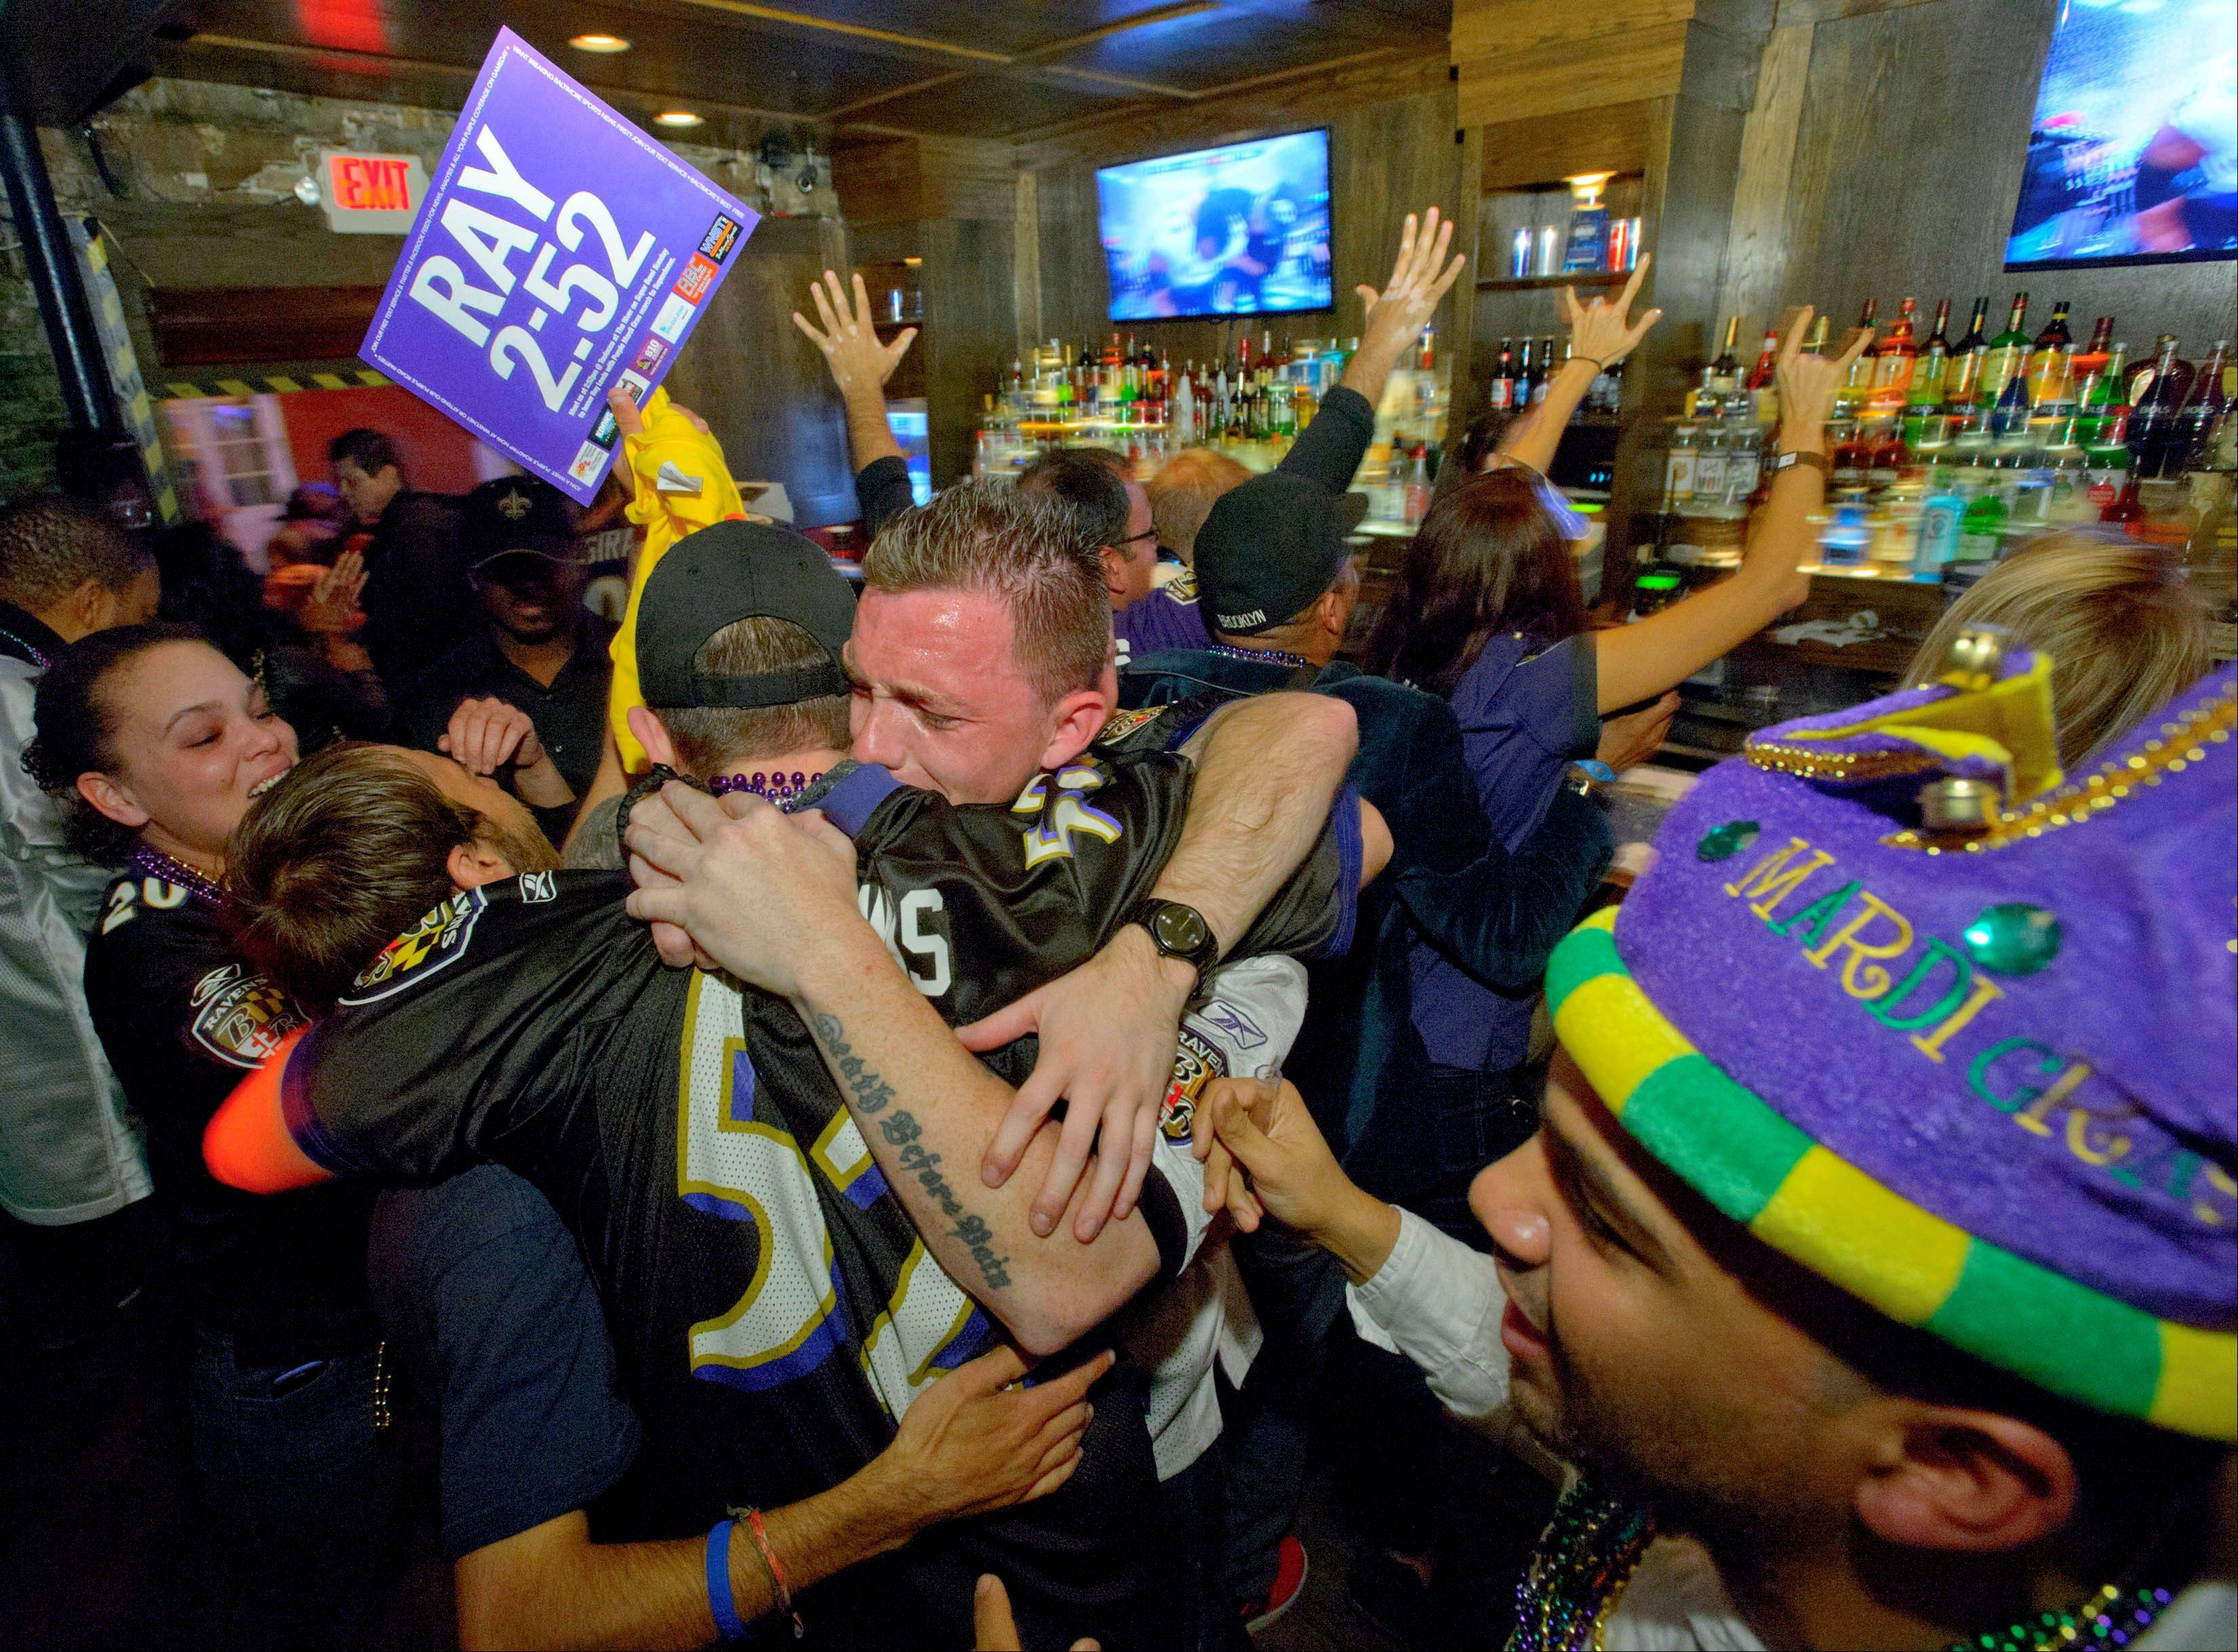 Lee Fuller of Baltimore, center, and others celebrate the Ravens' Super Bowl triumph on Sunday at the Famous Door Bar on Bourbon Street in New Orleans